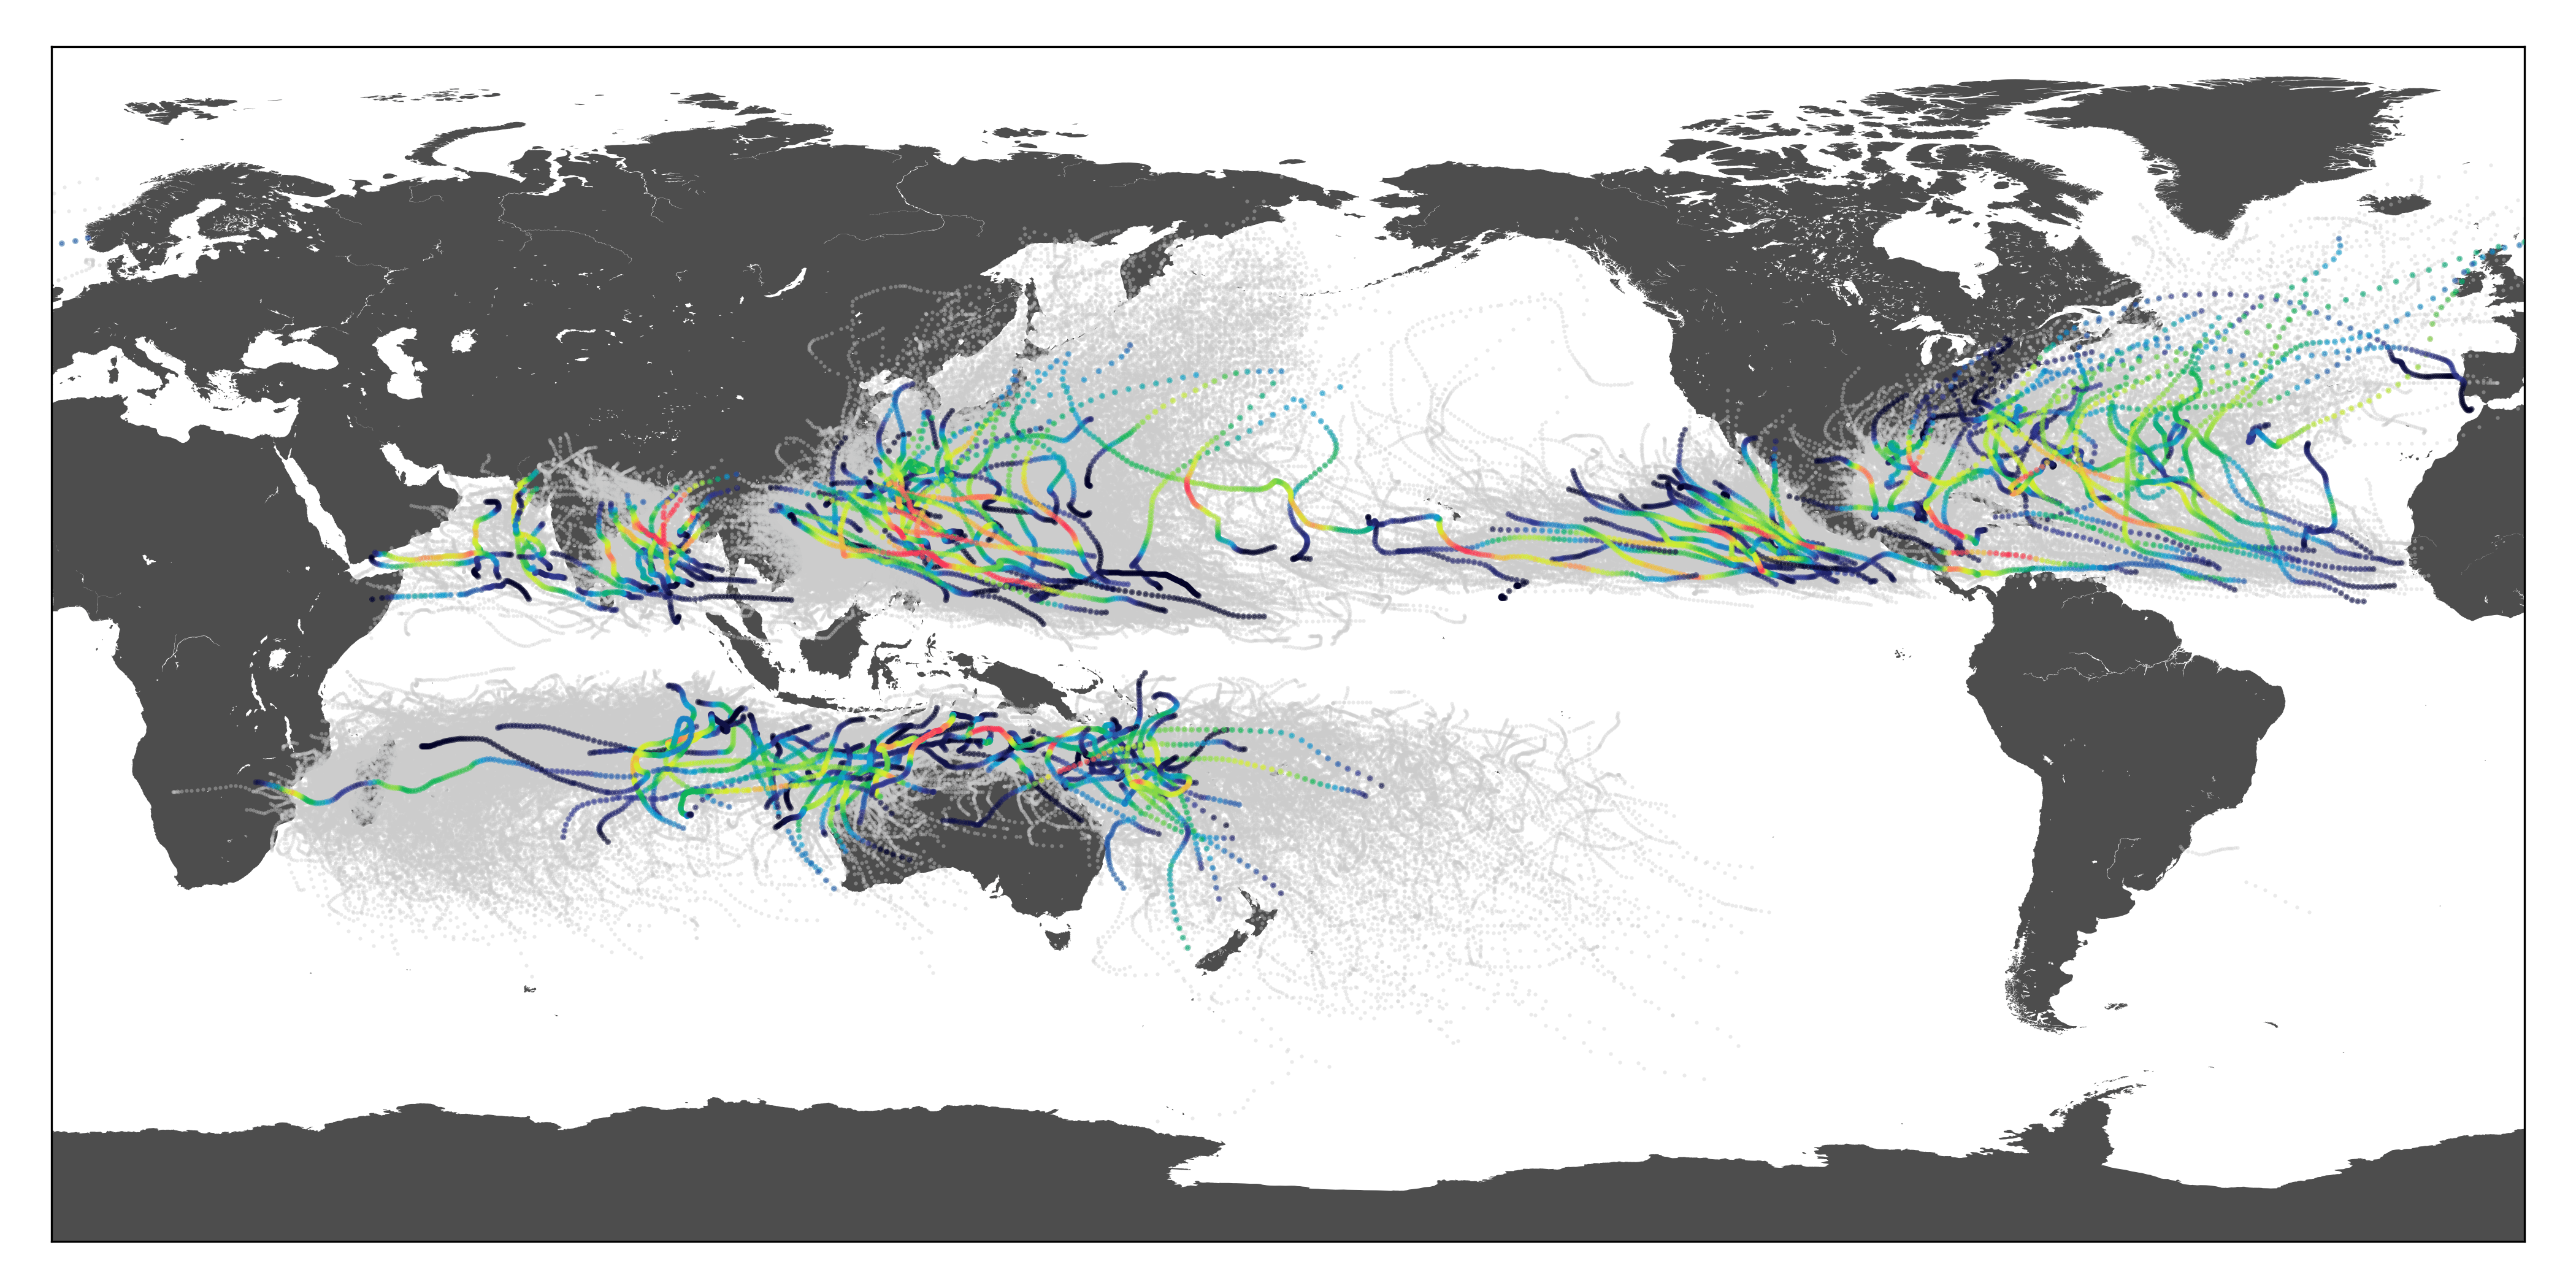 InCyc: A Global Tropical Cyclone Insights Database